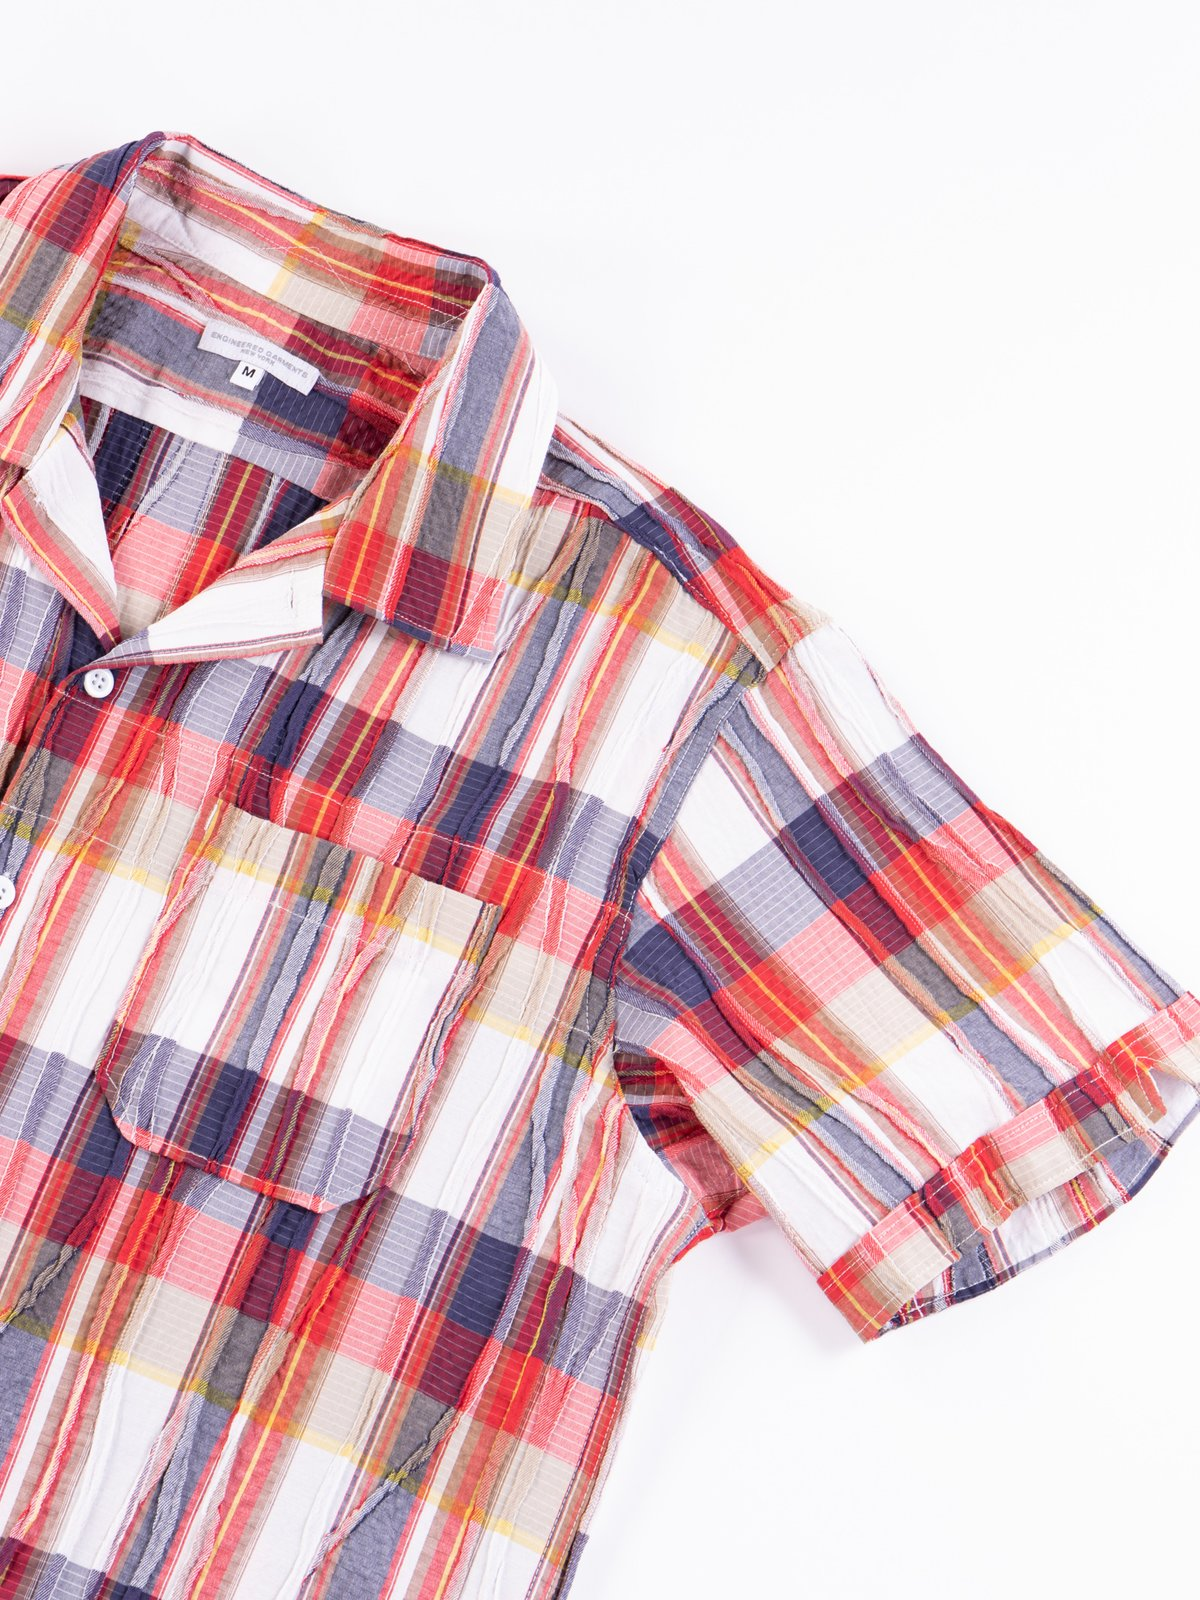 Red/White Cotton Crepe Check Camp Shirt - Image 5